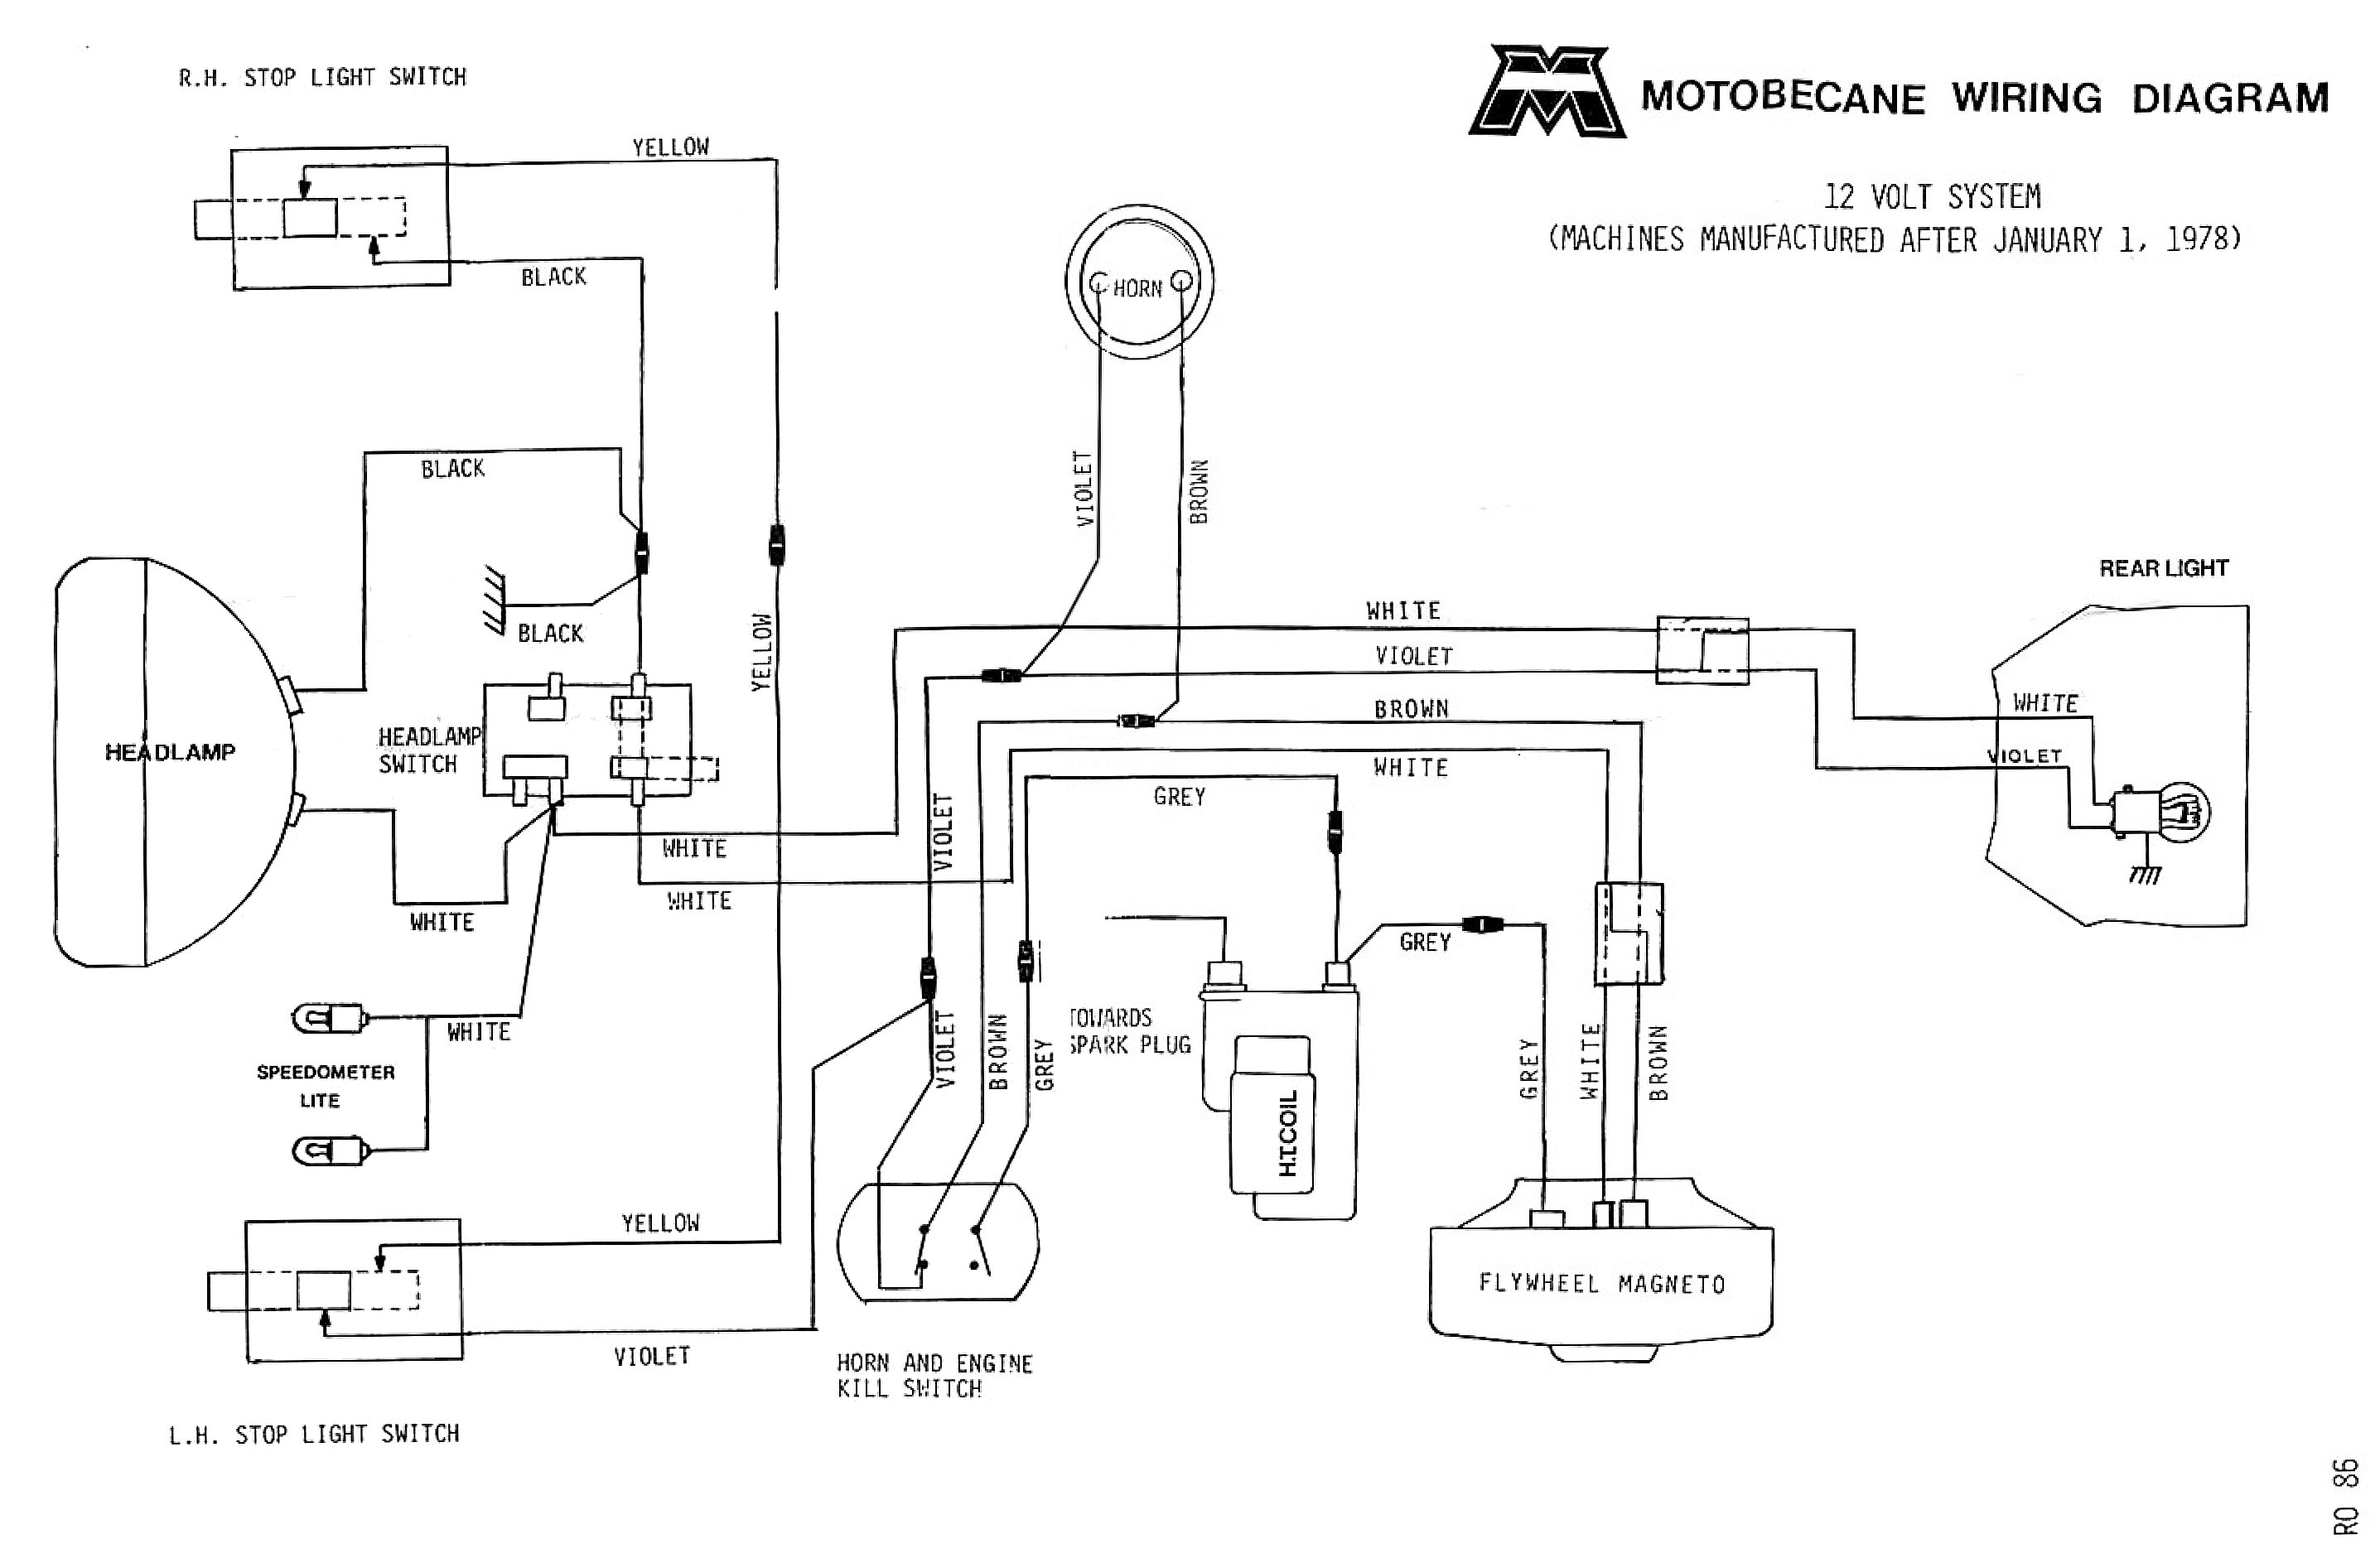 Ih 1700 Tractor Wiring Diagram | Wiring Diagram Ih Wiring Diagram on